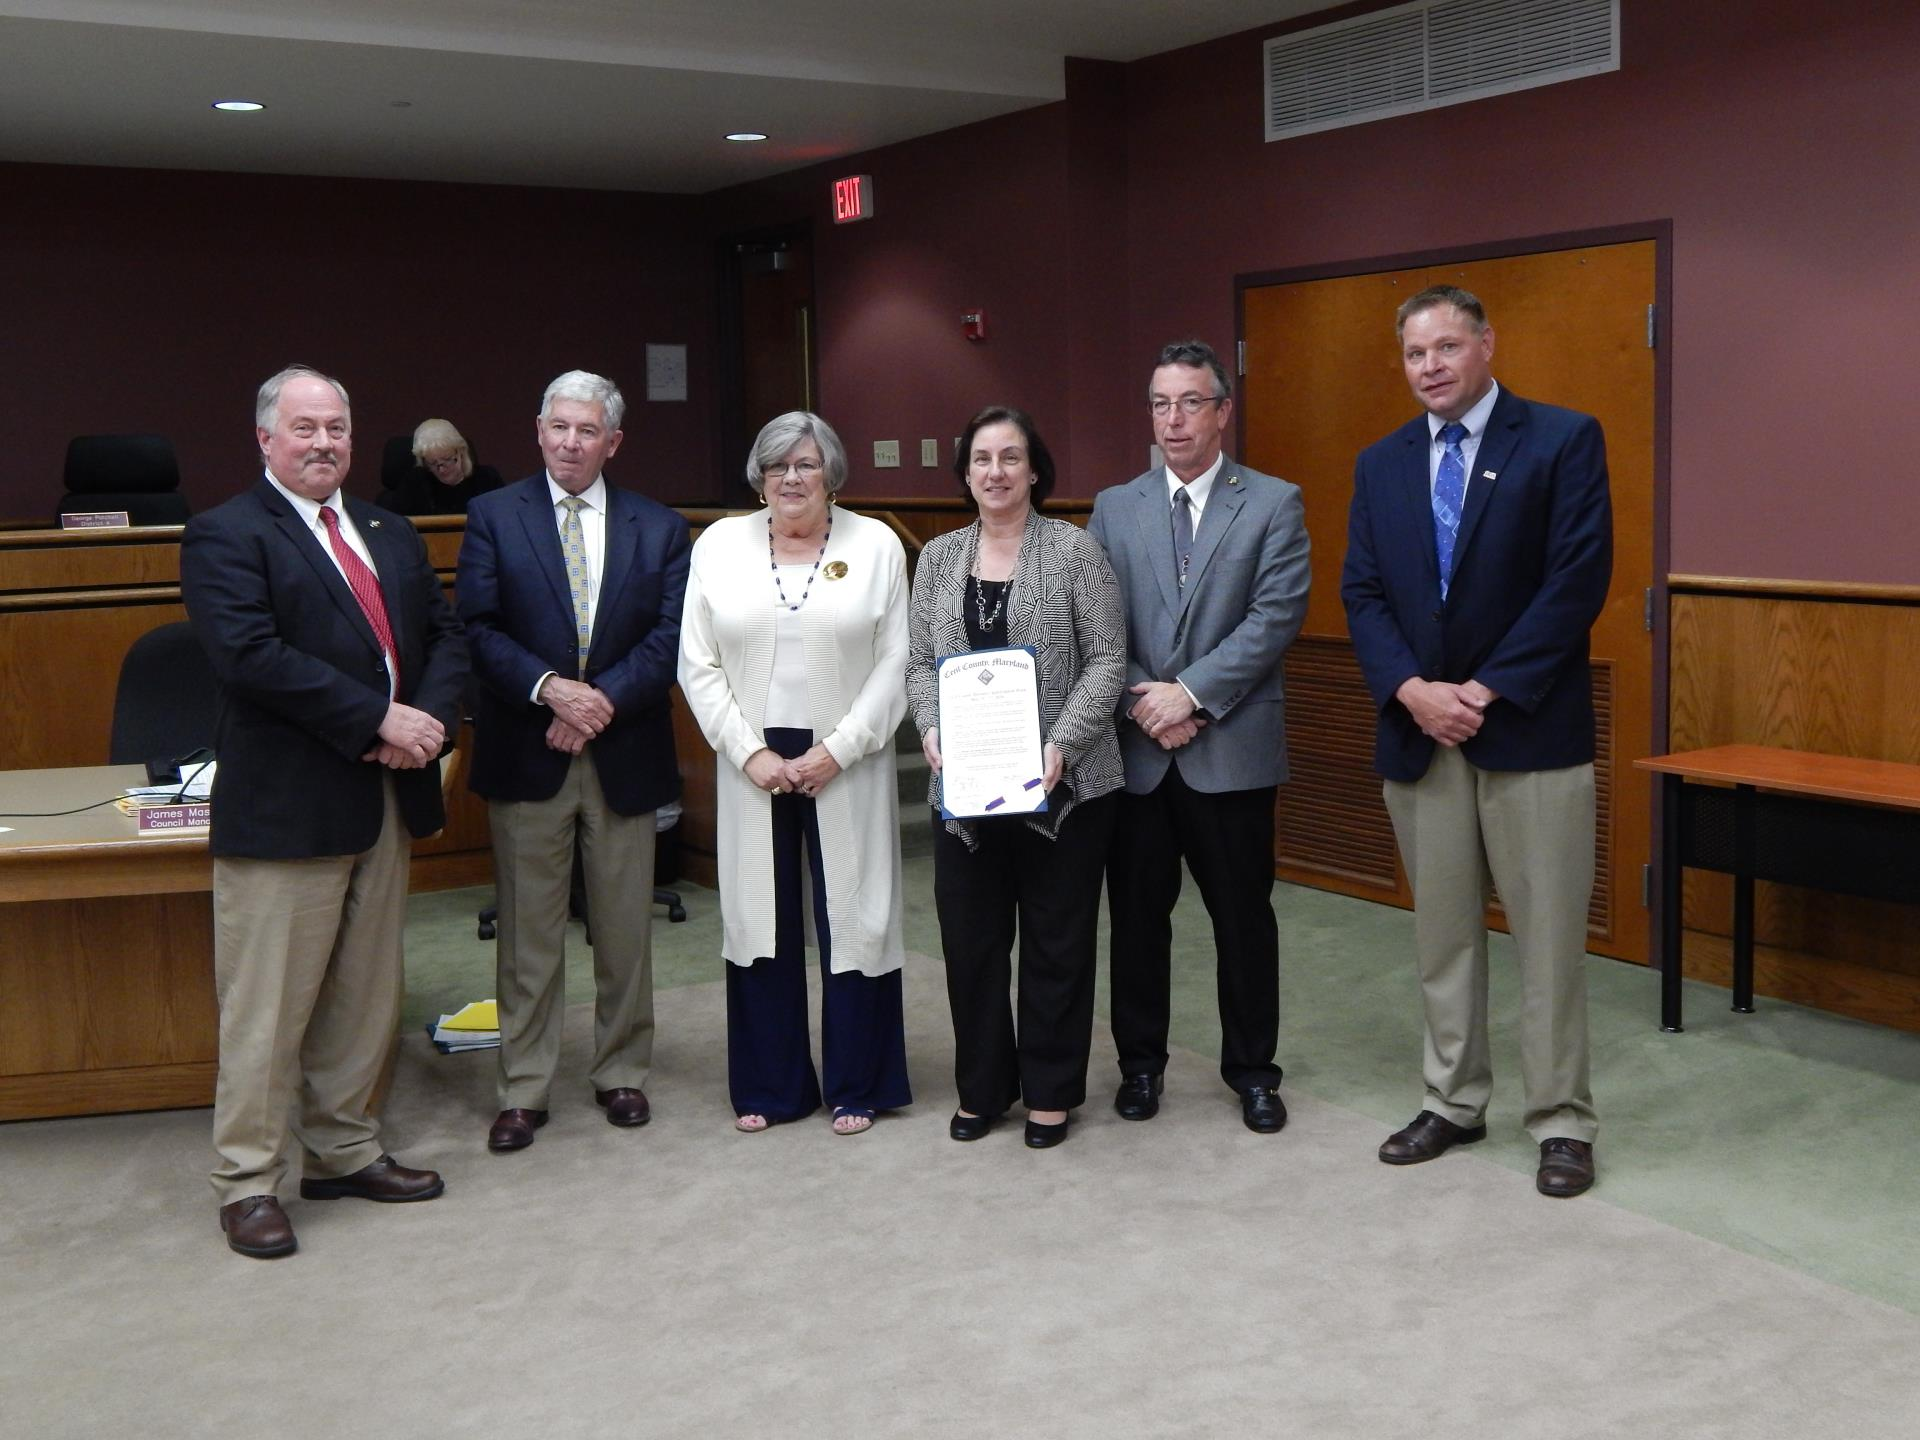 Presentation for Cecil County Business Appreciation Week May 23-27, 2016